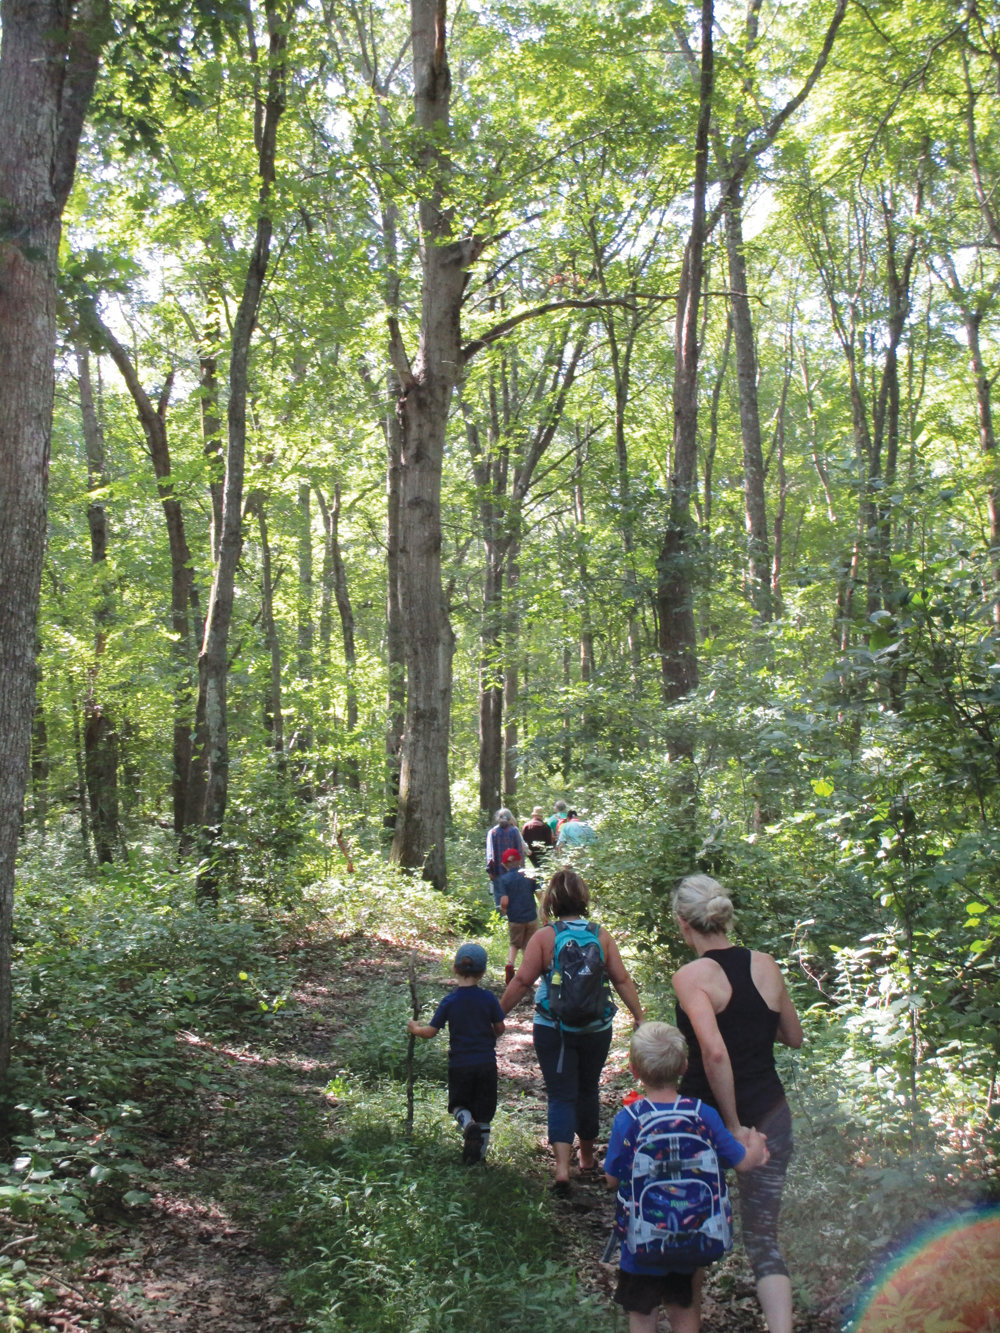 ON THE TRAIL: Hikers take part in a walk along the Knight Farm Trail in Cranston in this August 2019 file photo.